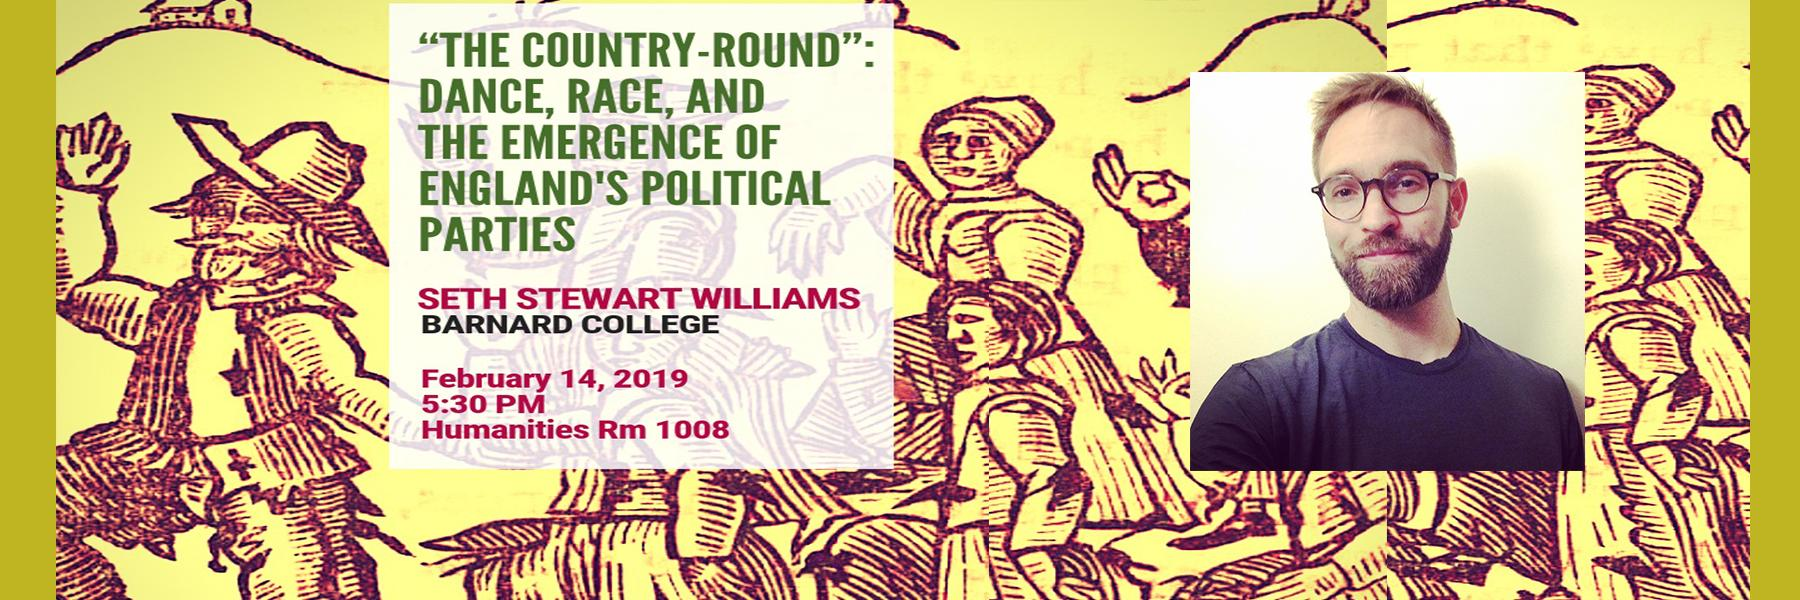 "The Country-Round"": Dance, Race, and the Emergence of England's Political Parties"